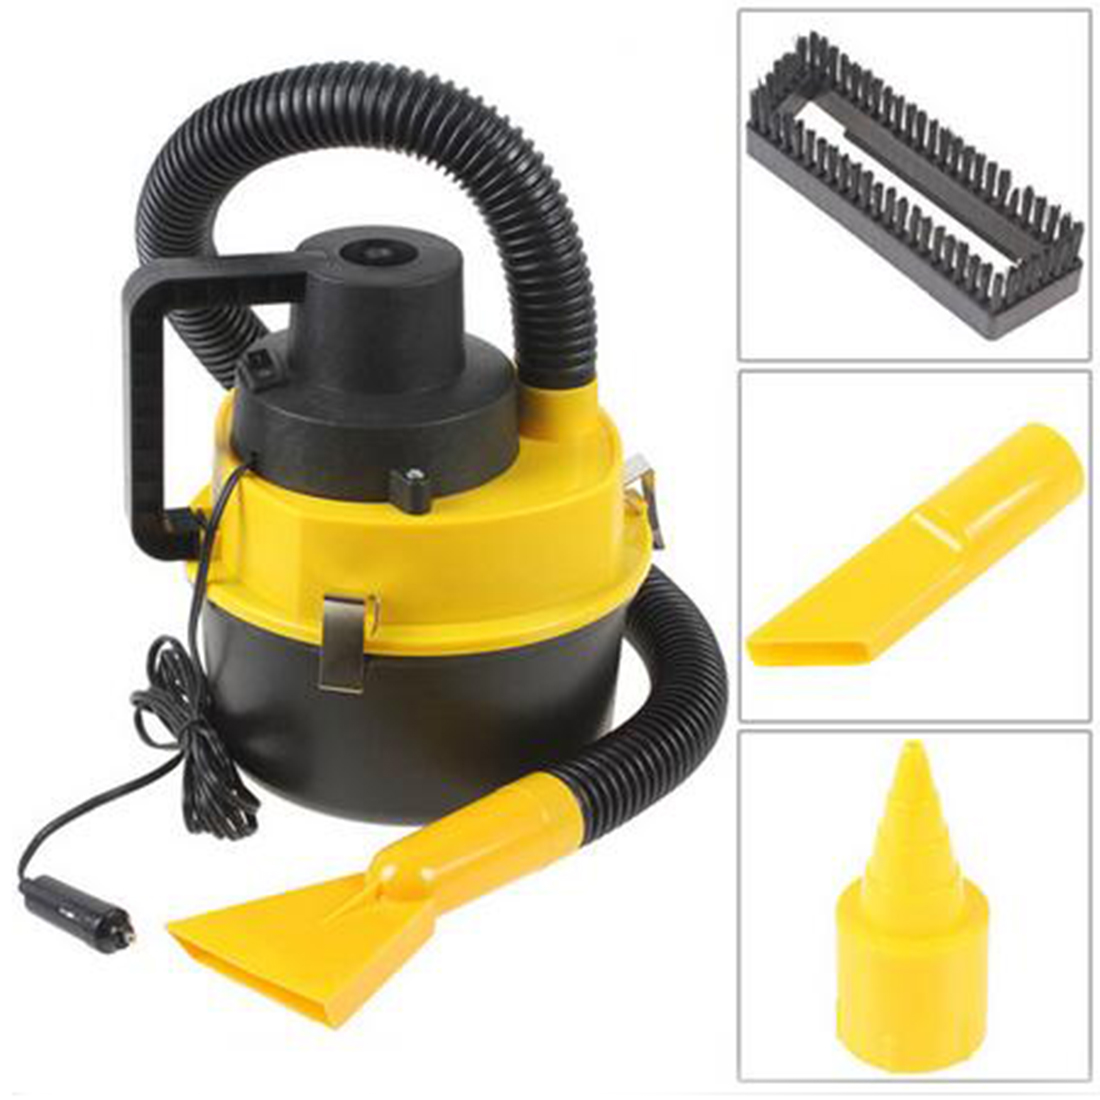 free shipping Dc12V High Power Wet And Dry Portable Handheld Car Vacuum Cleaner Washer Car Mini Dust Vacuum Cleaner(China (Mainland))